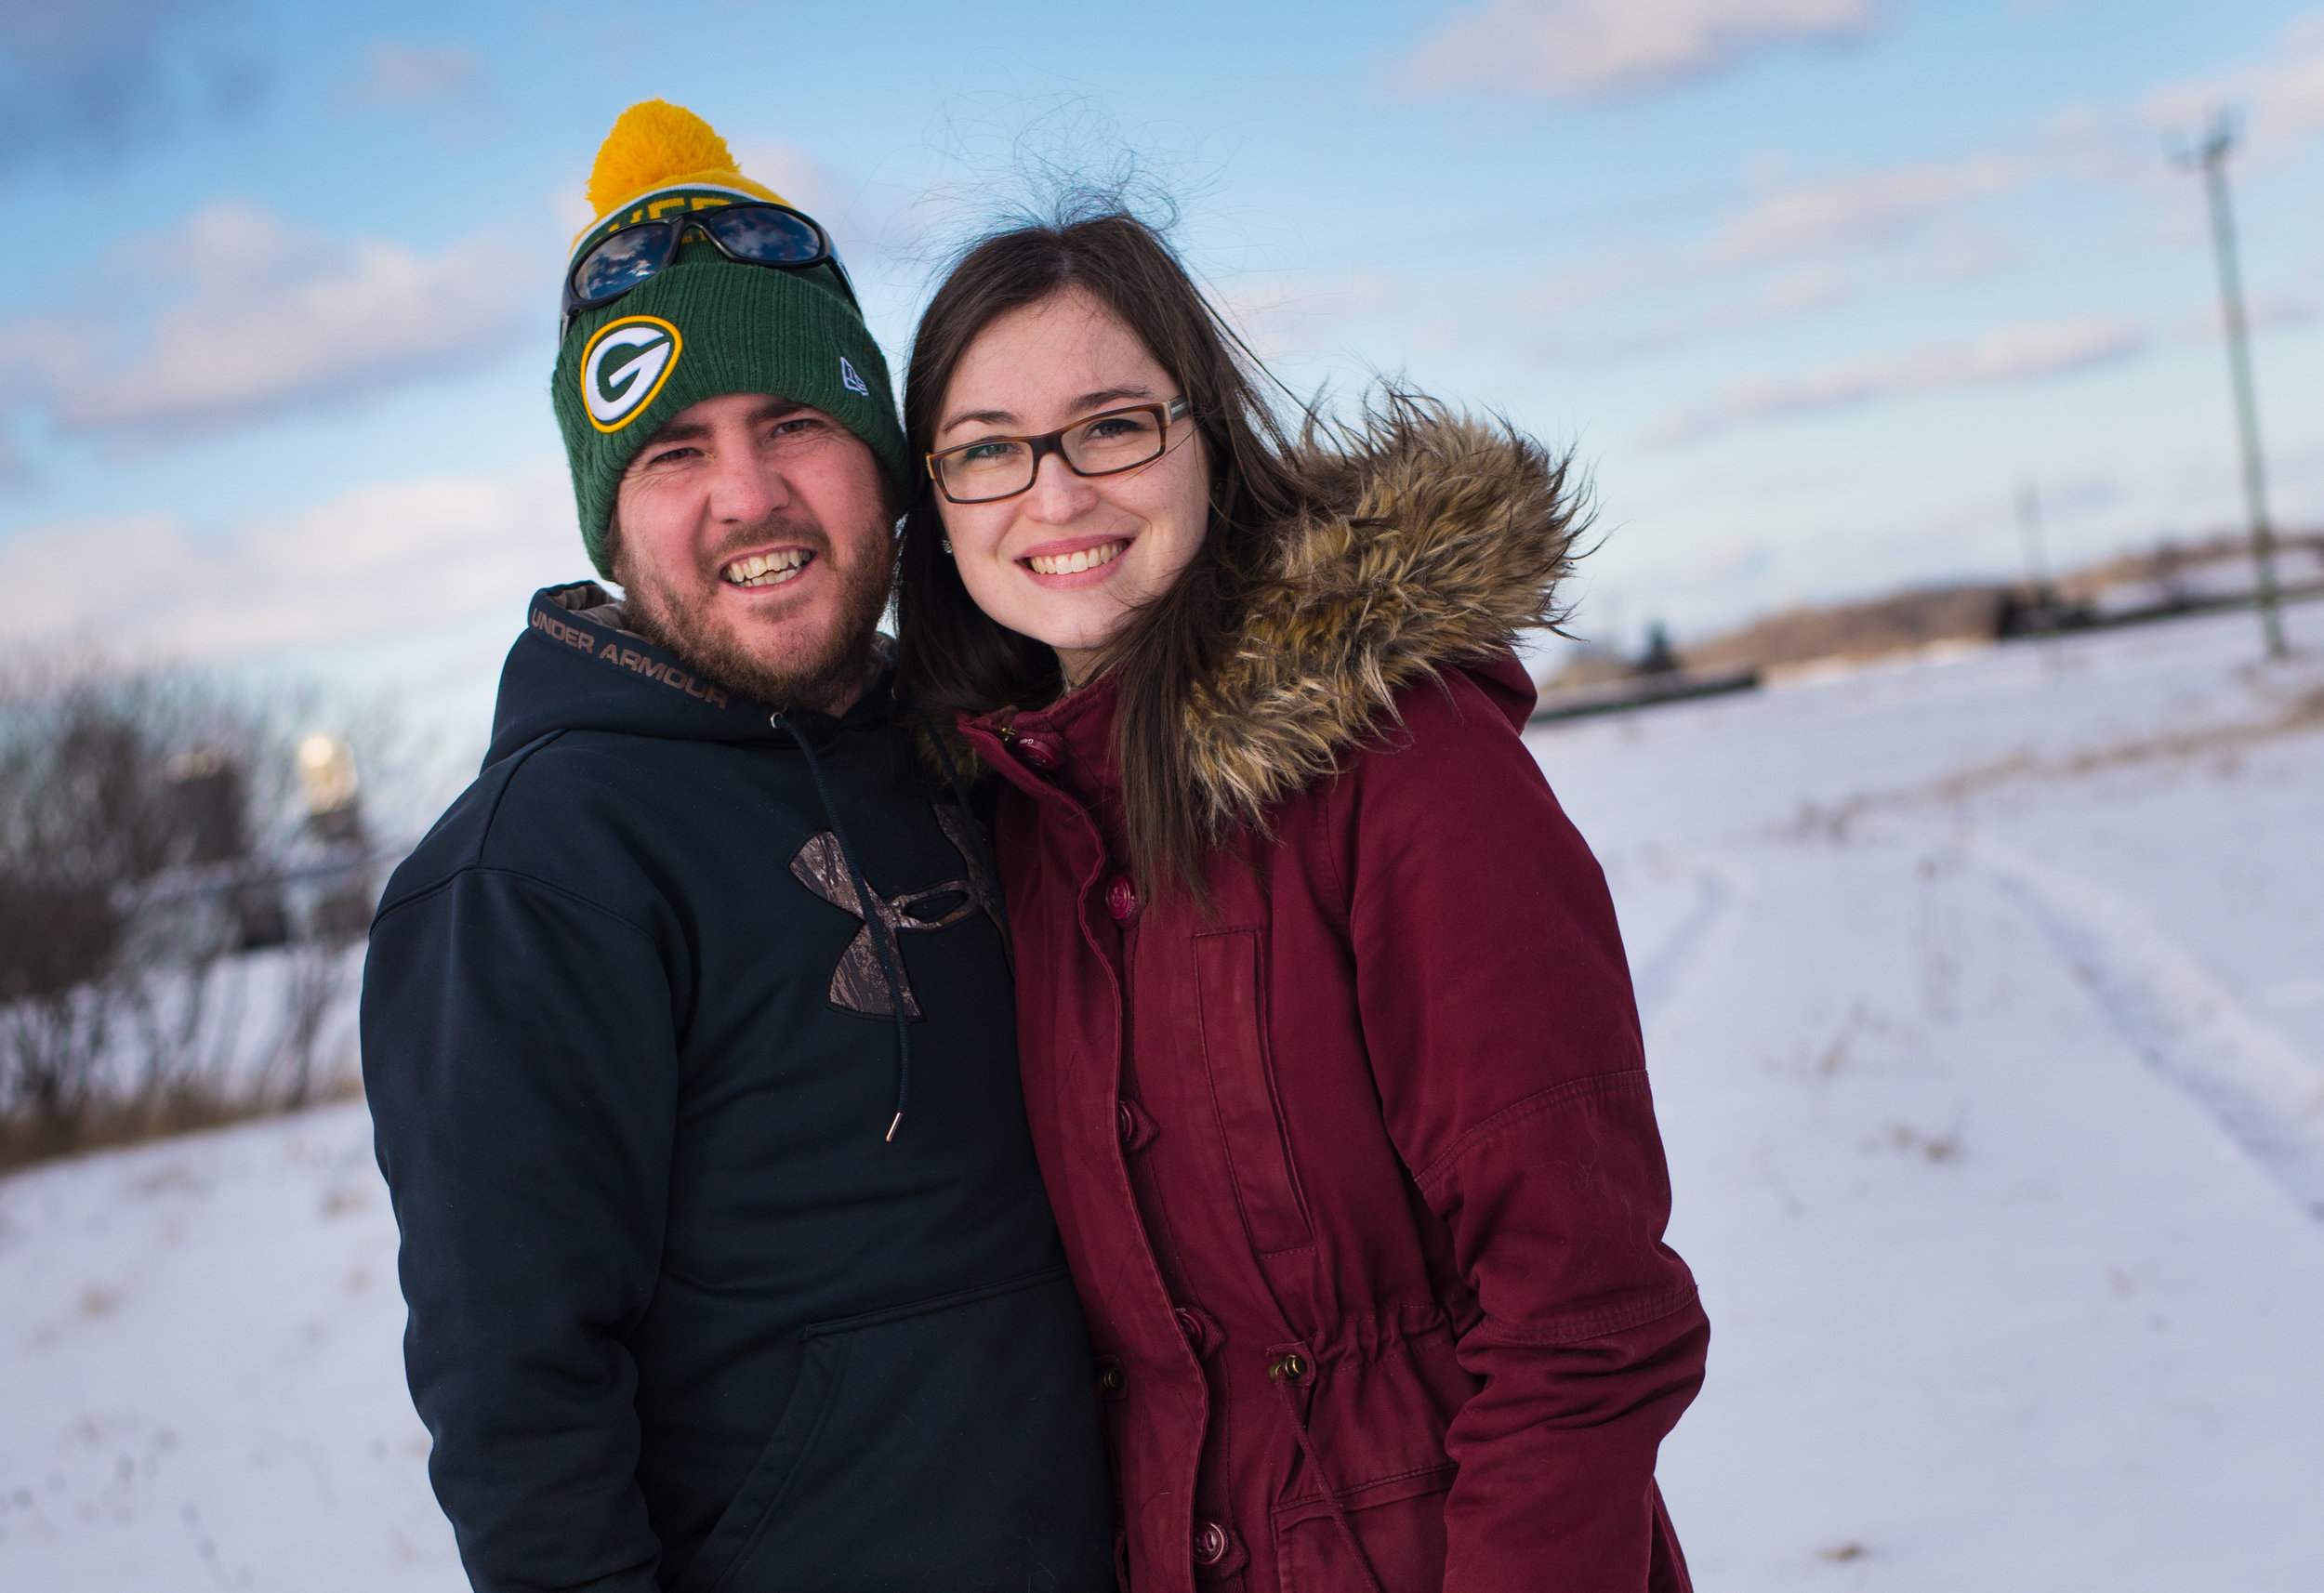 Our names our Marie-Eve and Danny Norris, we both suffer from Cystic Fibrosis. CF is the most fatal genetic disorder in Canada, which affects mainly the lungs and digestive system. The last option for end stage CF is a double lung transplant.